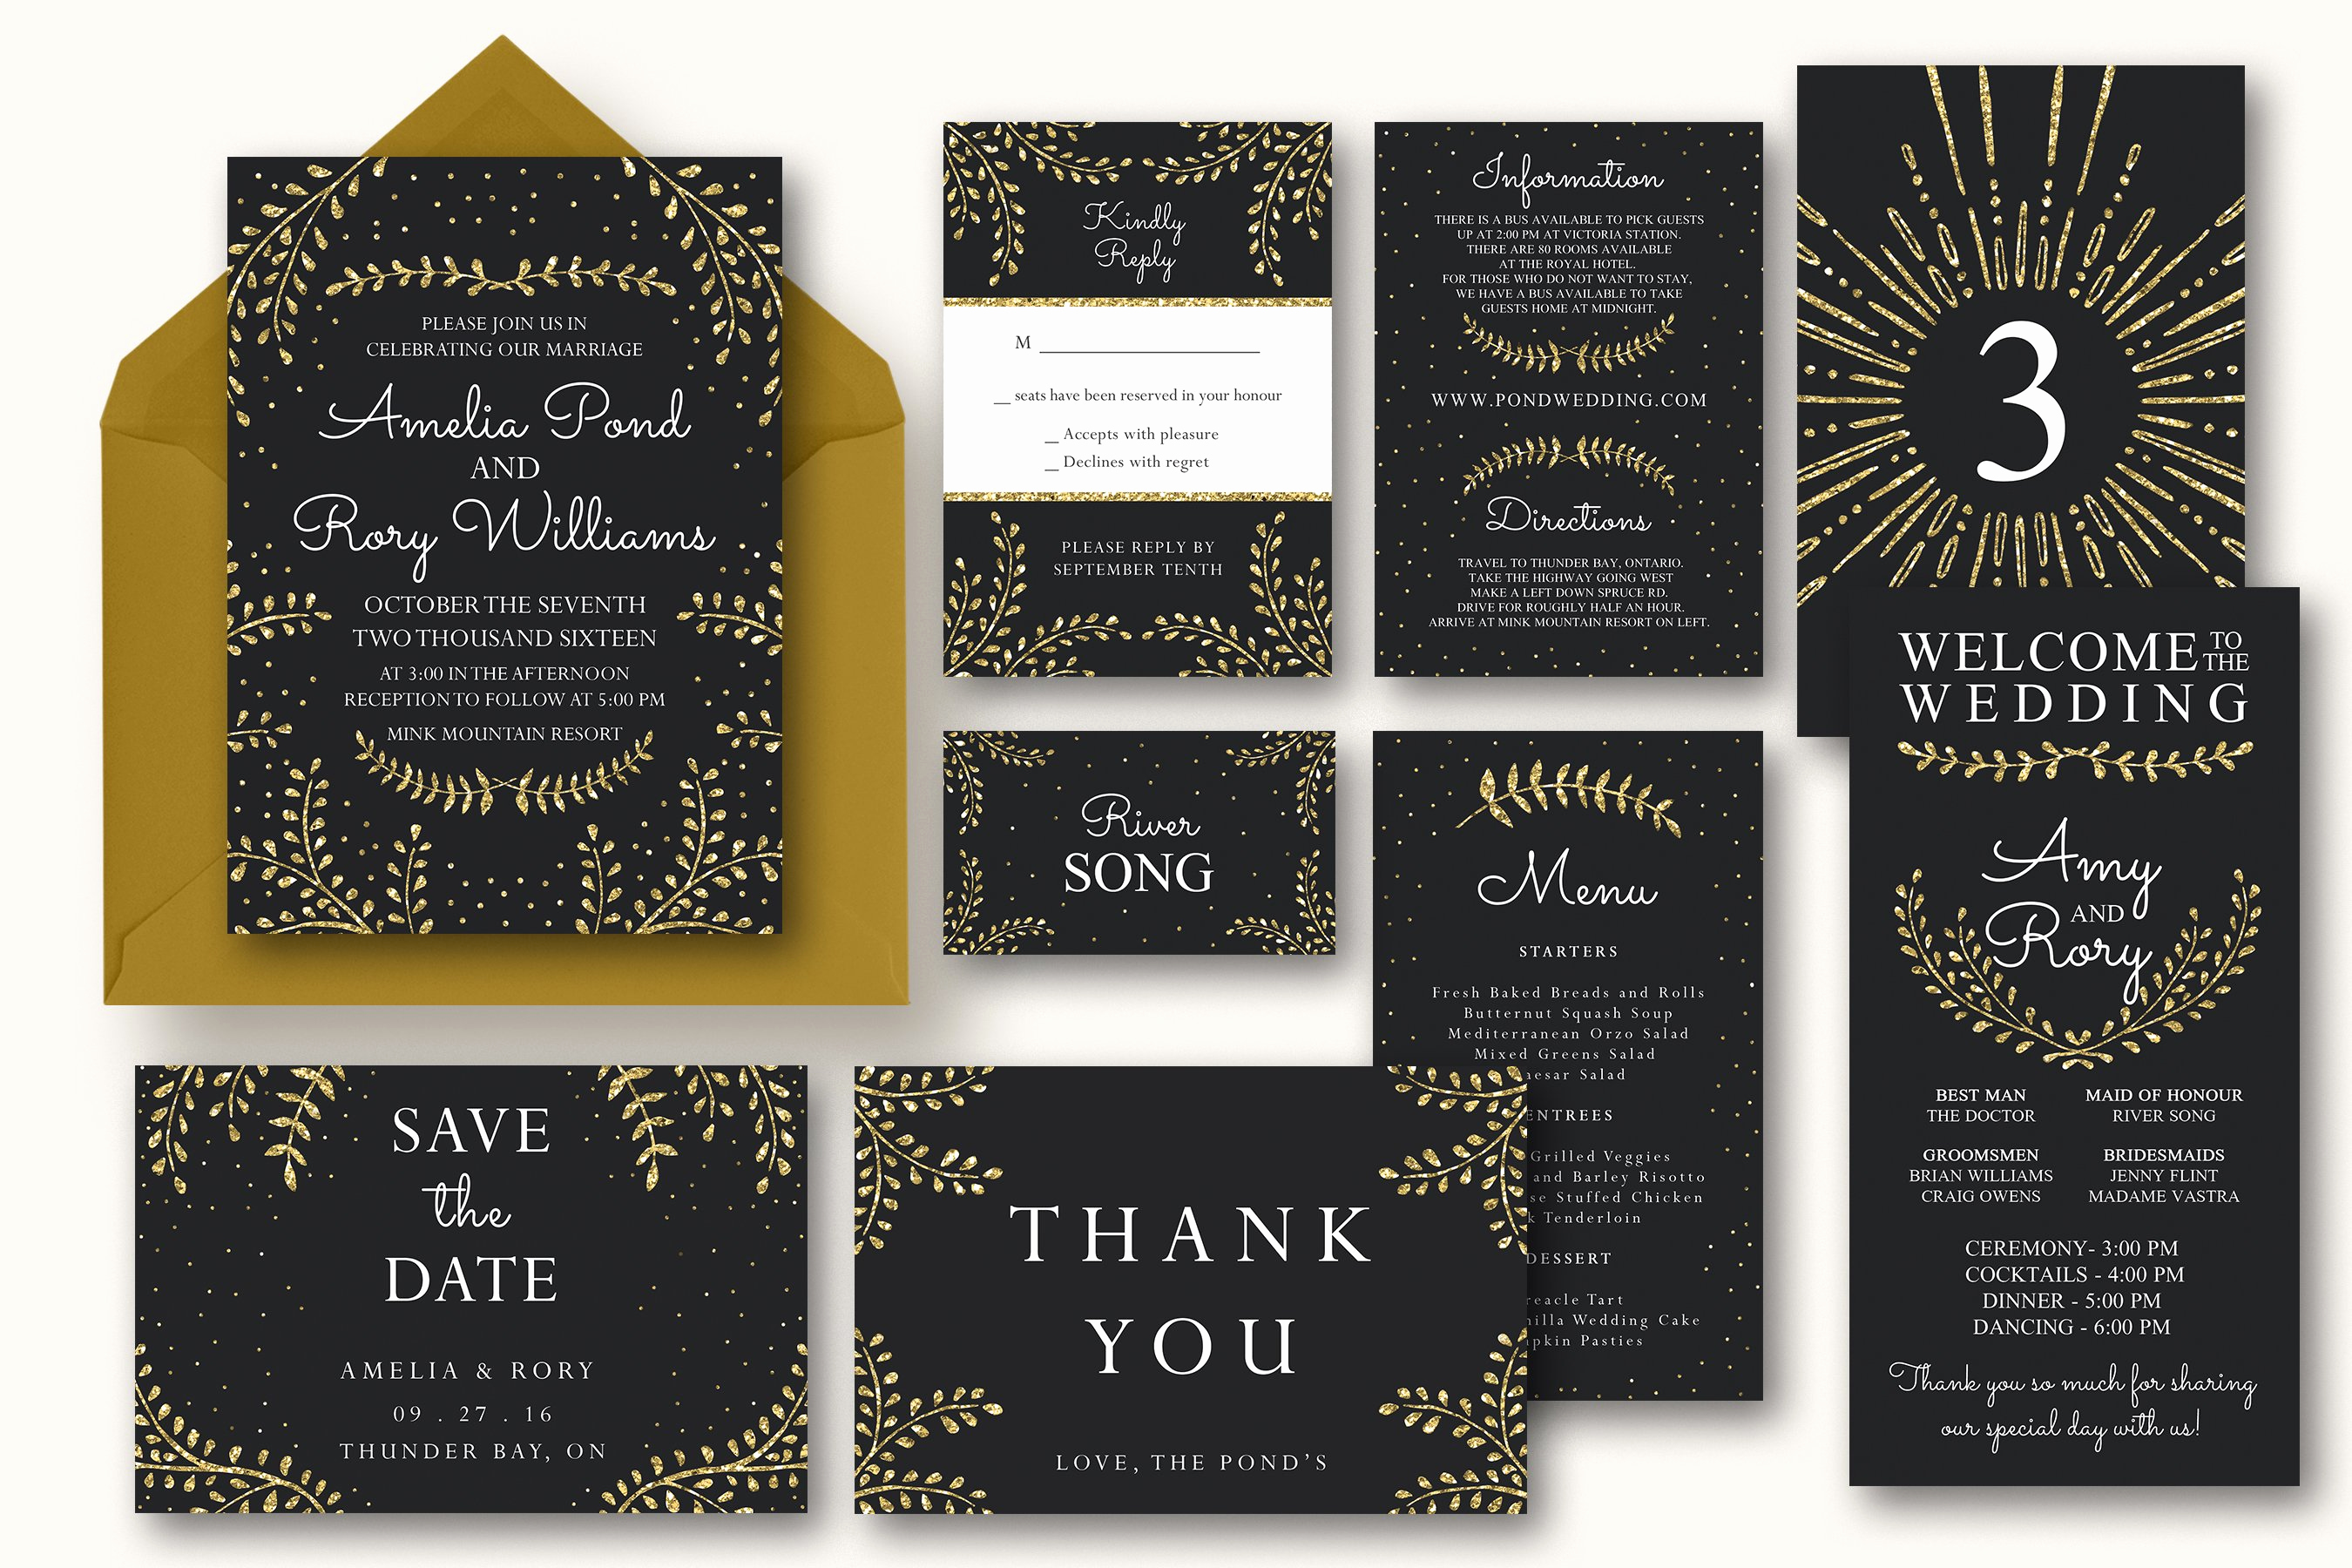 New Year Invitation Template Inspirational New Years Wedding Invitation Suite Invitation Templates